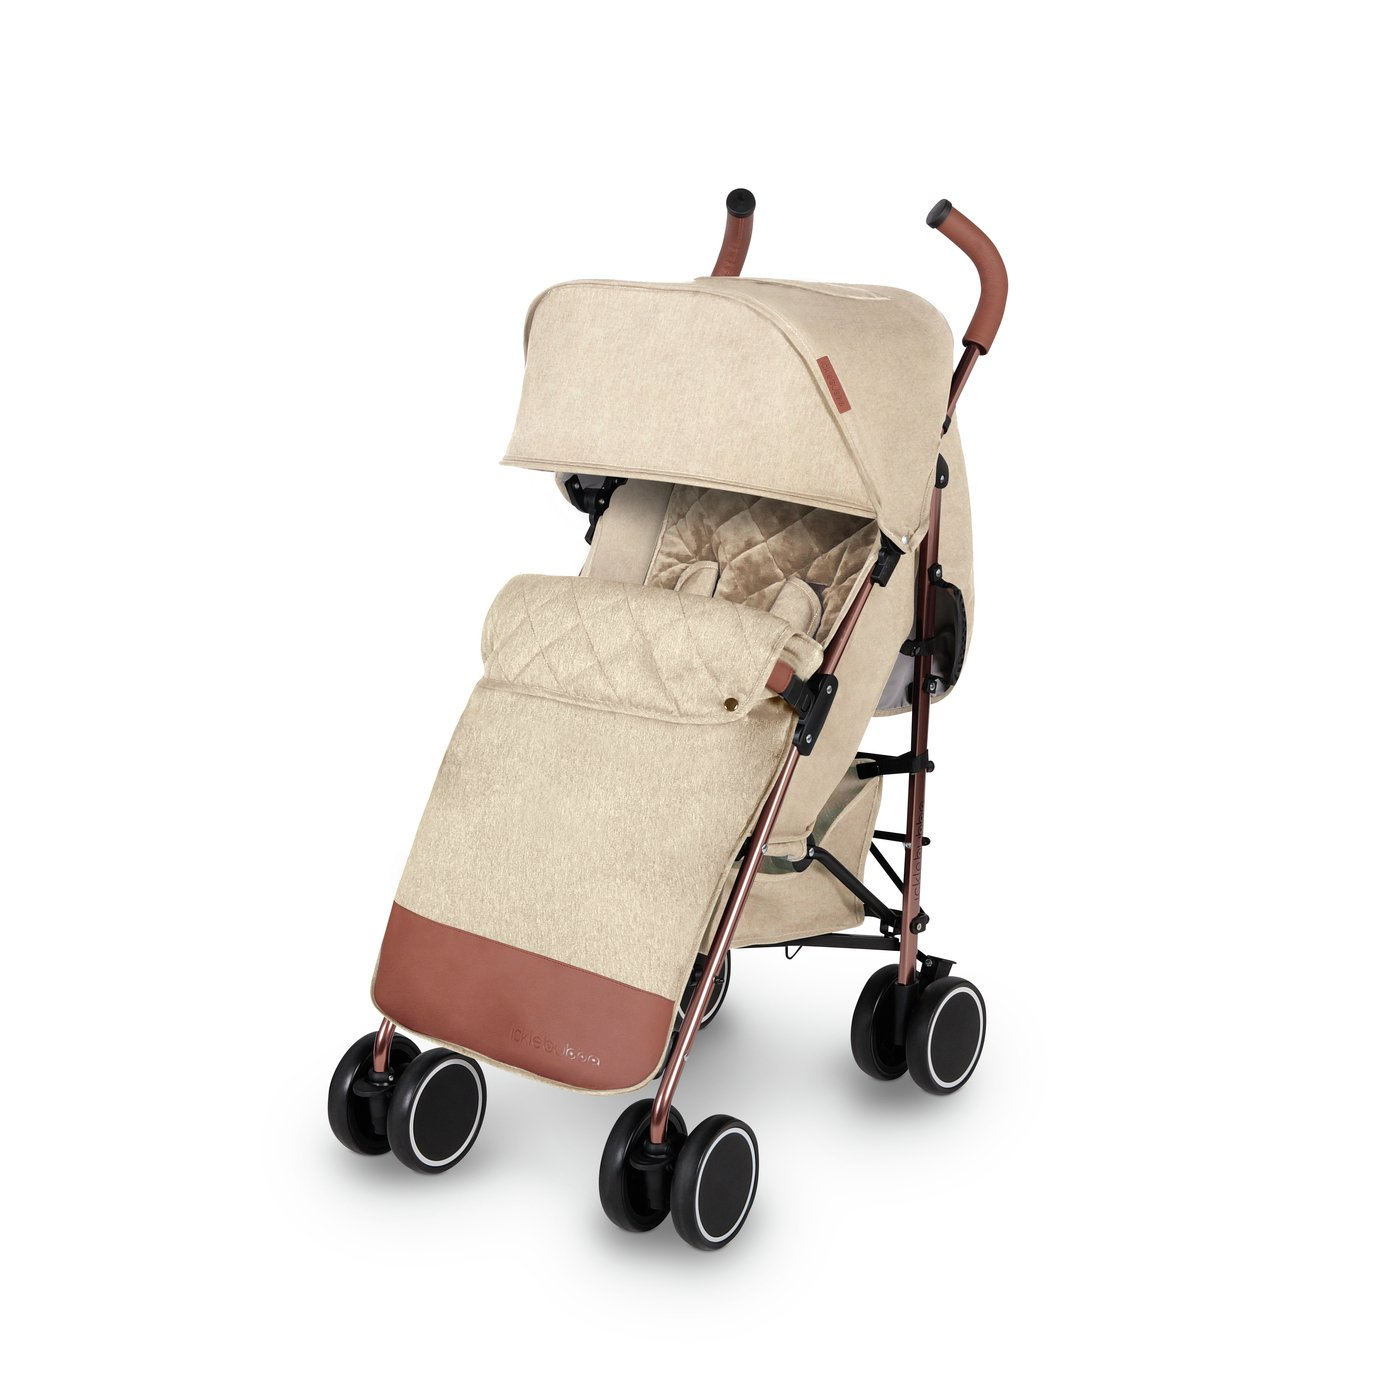 Ickle Bubba Discovery Max Stroller - Cream Rose Gold